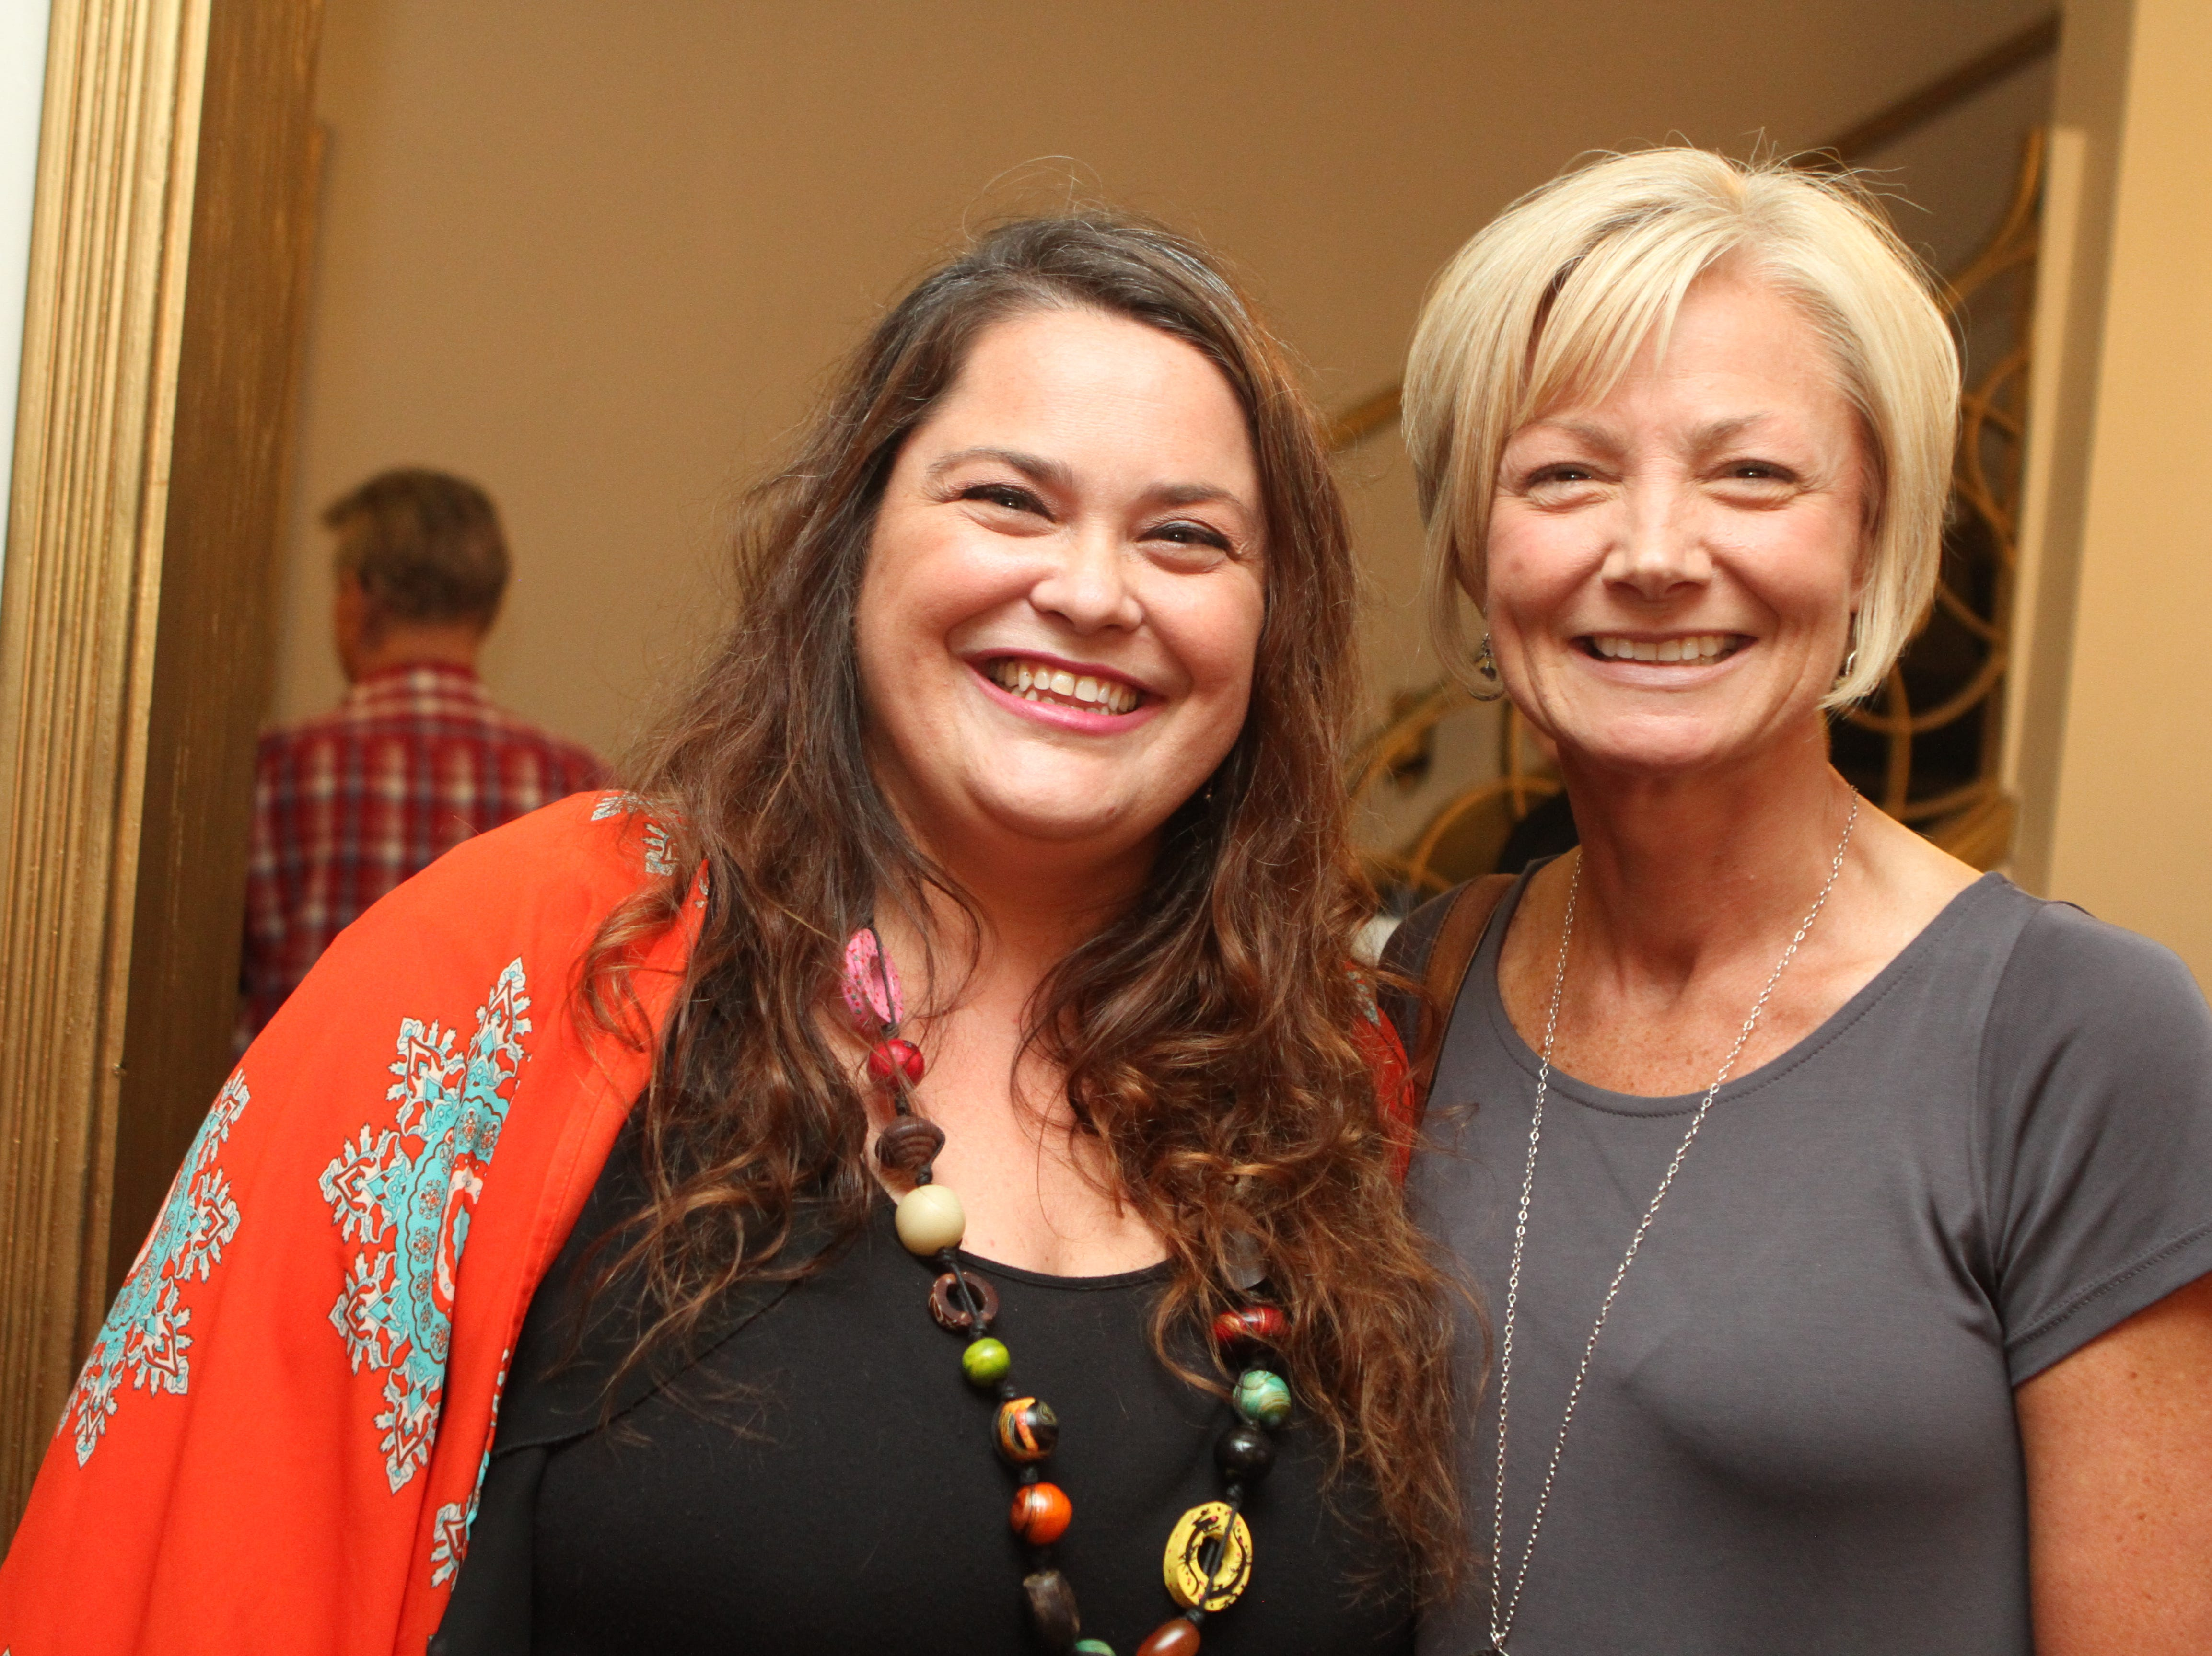 Nicole Oconnor and Lisa Martin at the Roxy Regional Theatre for the United Way 2018 campaign fundraising event Thursday night.